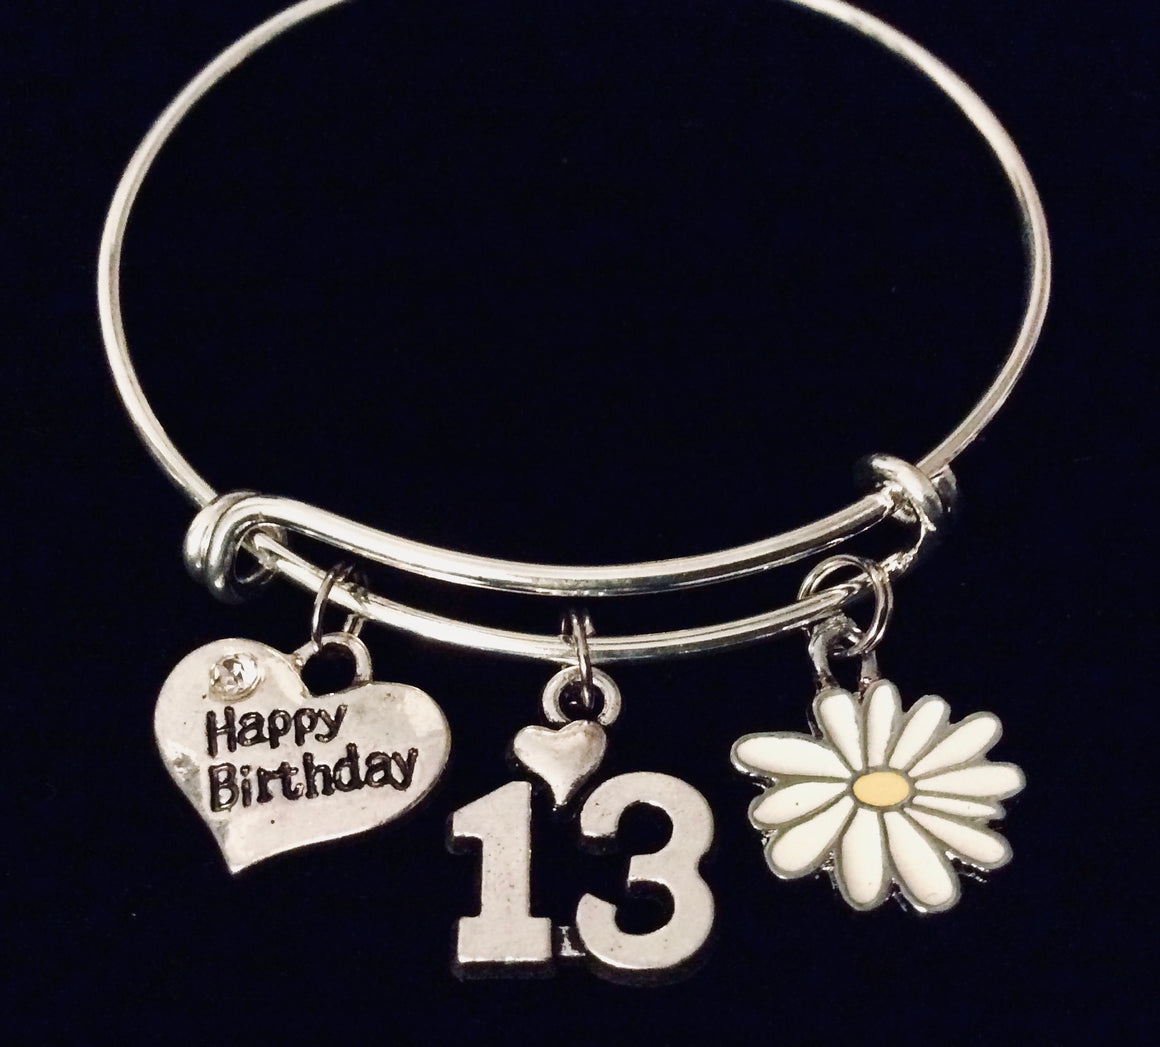 13th Birthday Happy Birthday 13 Expandable Charm Bracelet Adjustable Bangle Trendy Gift